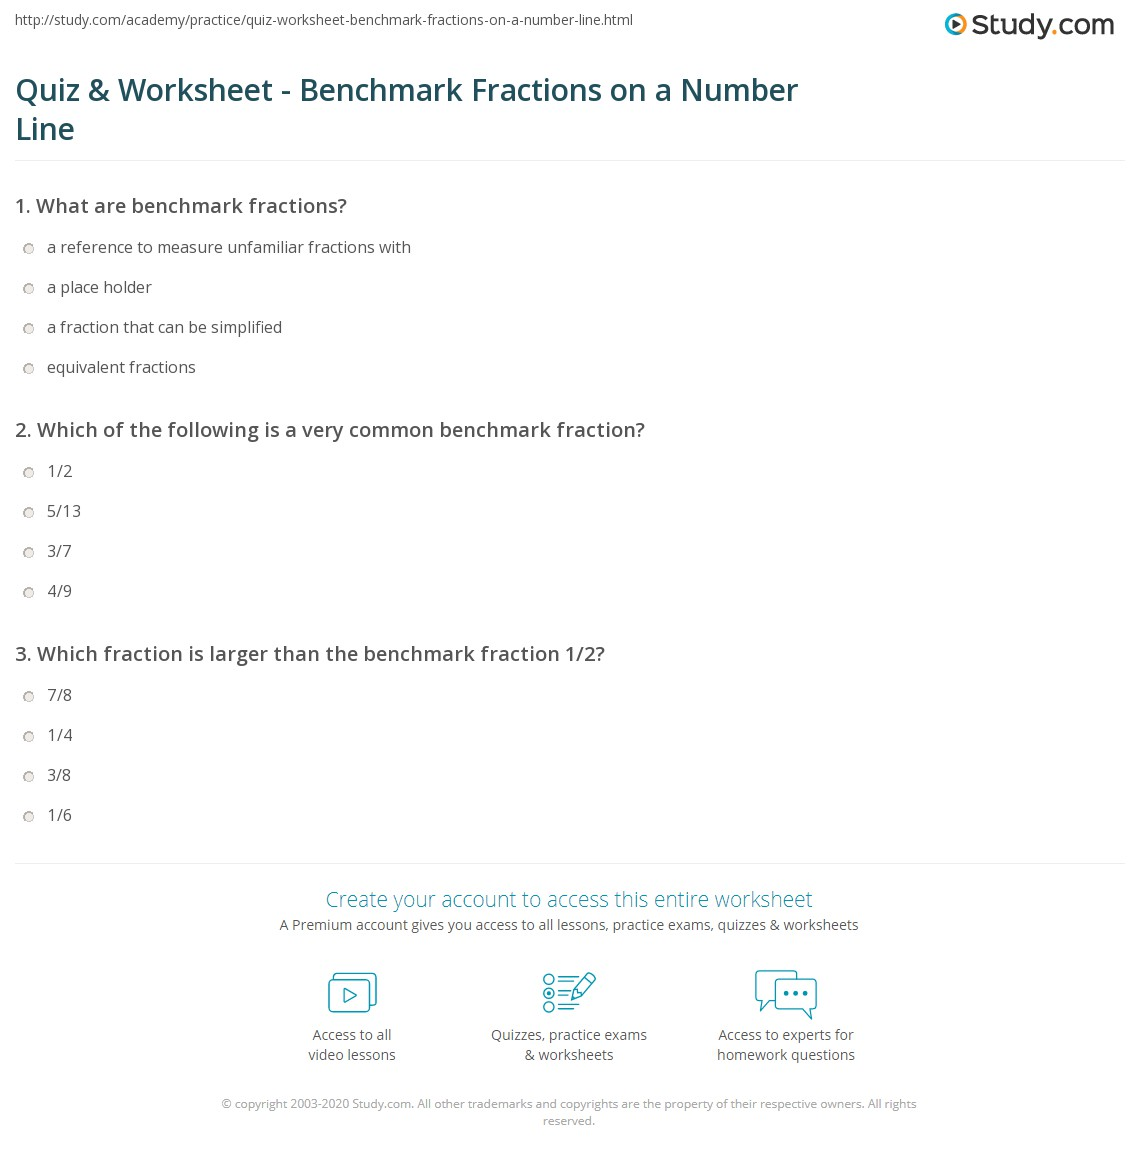 quiz & worksheet - benchmark fractions on a number line | study